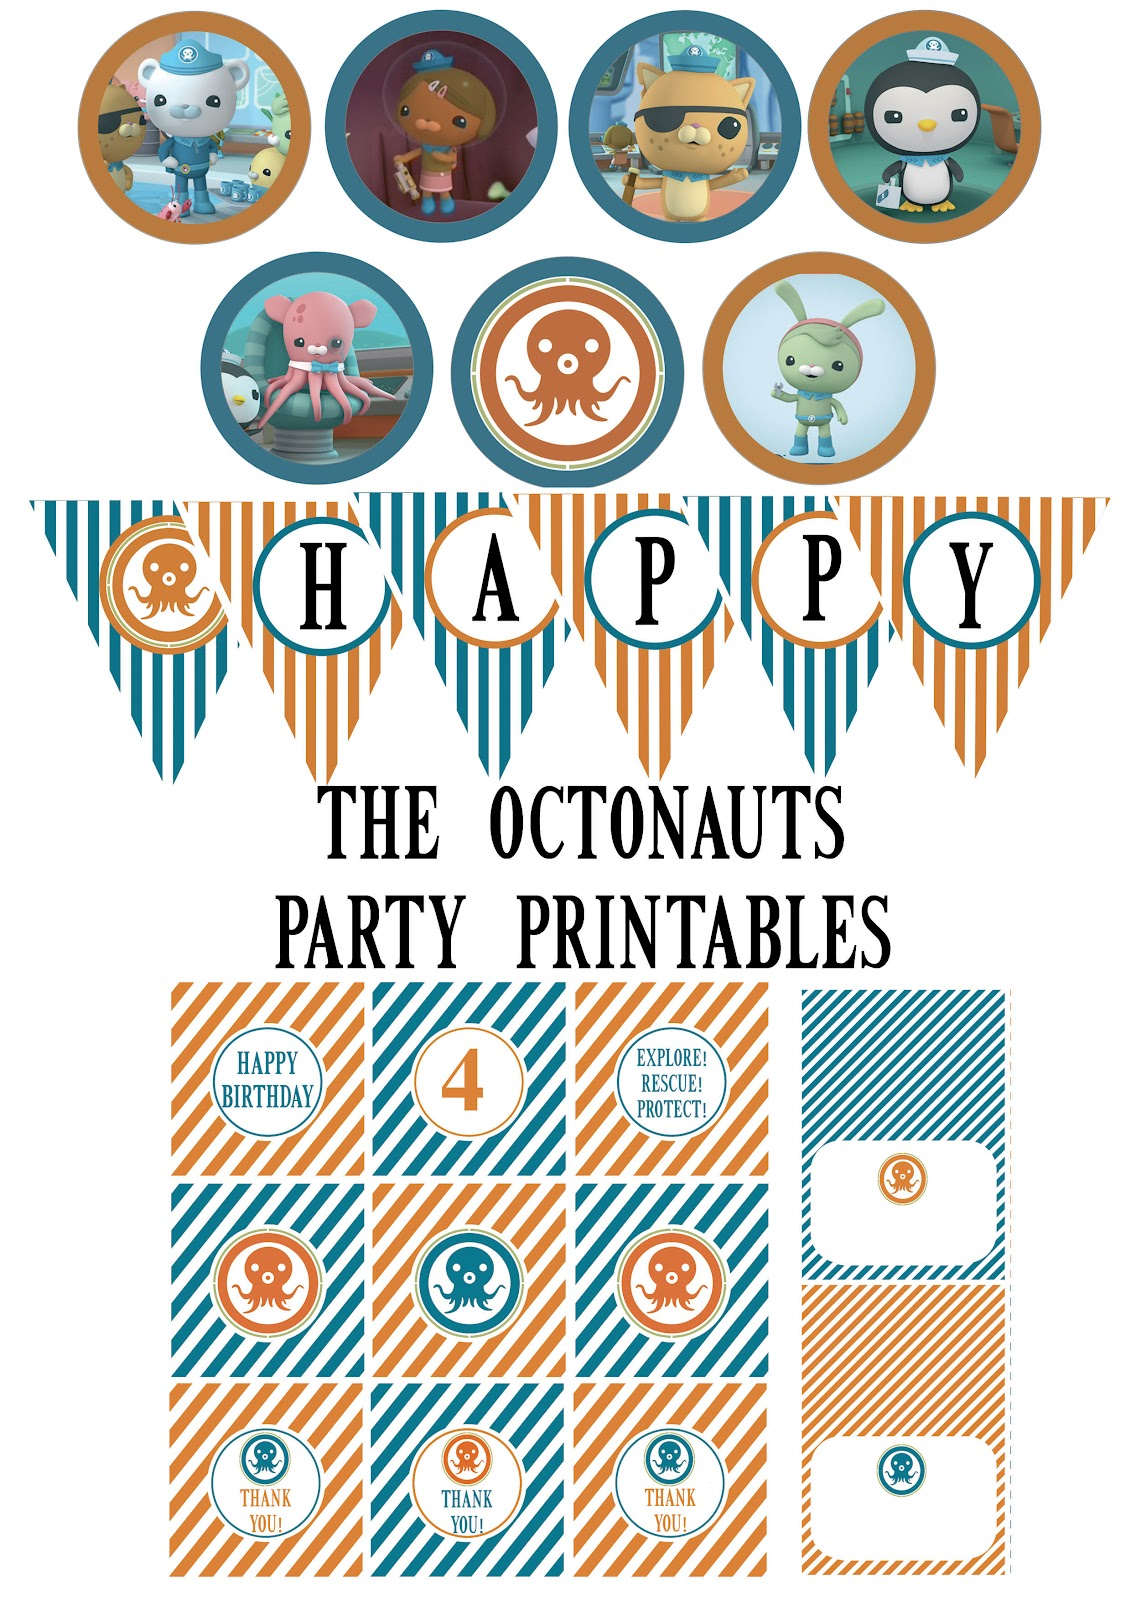 Octonauts Bedroom Wallpaper Octonauts Birthday Party Goodie Bag Ideas Free Printables Home